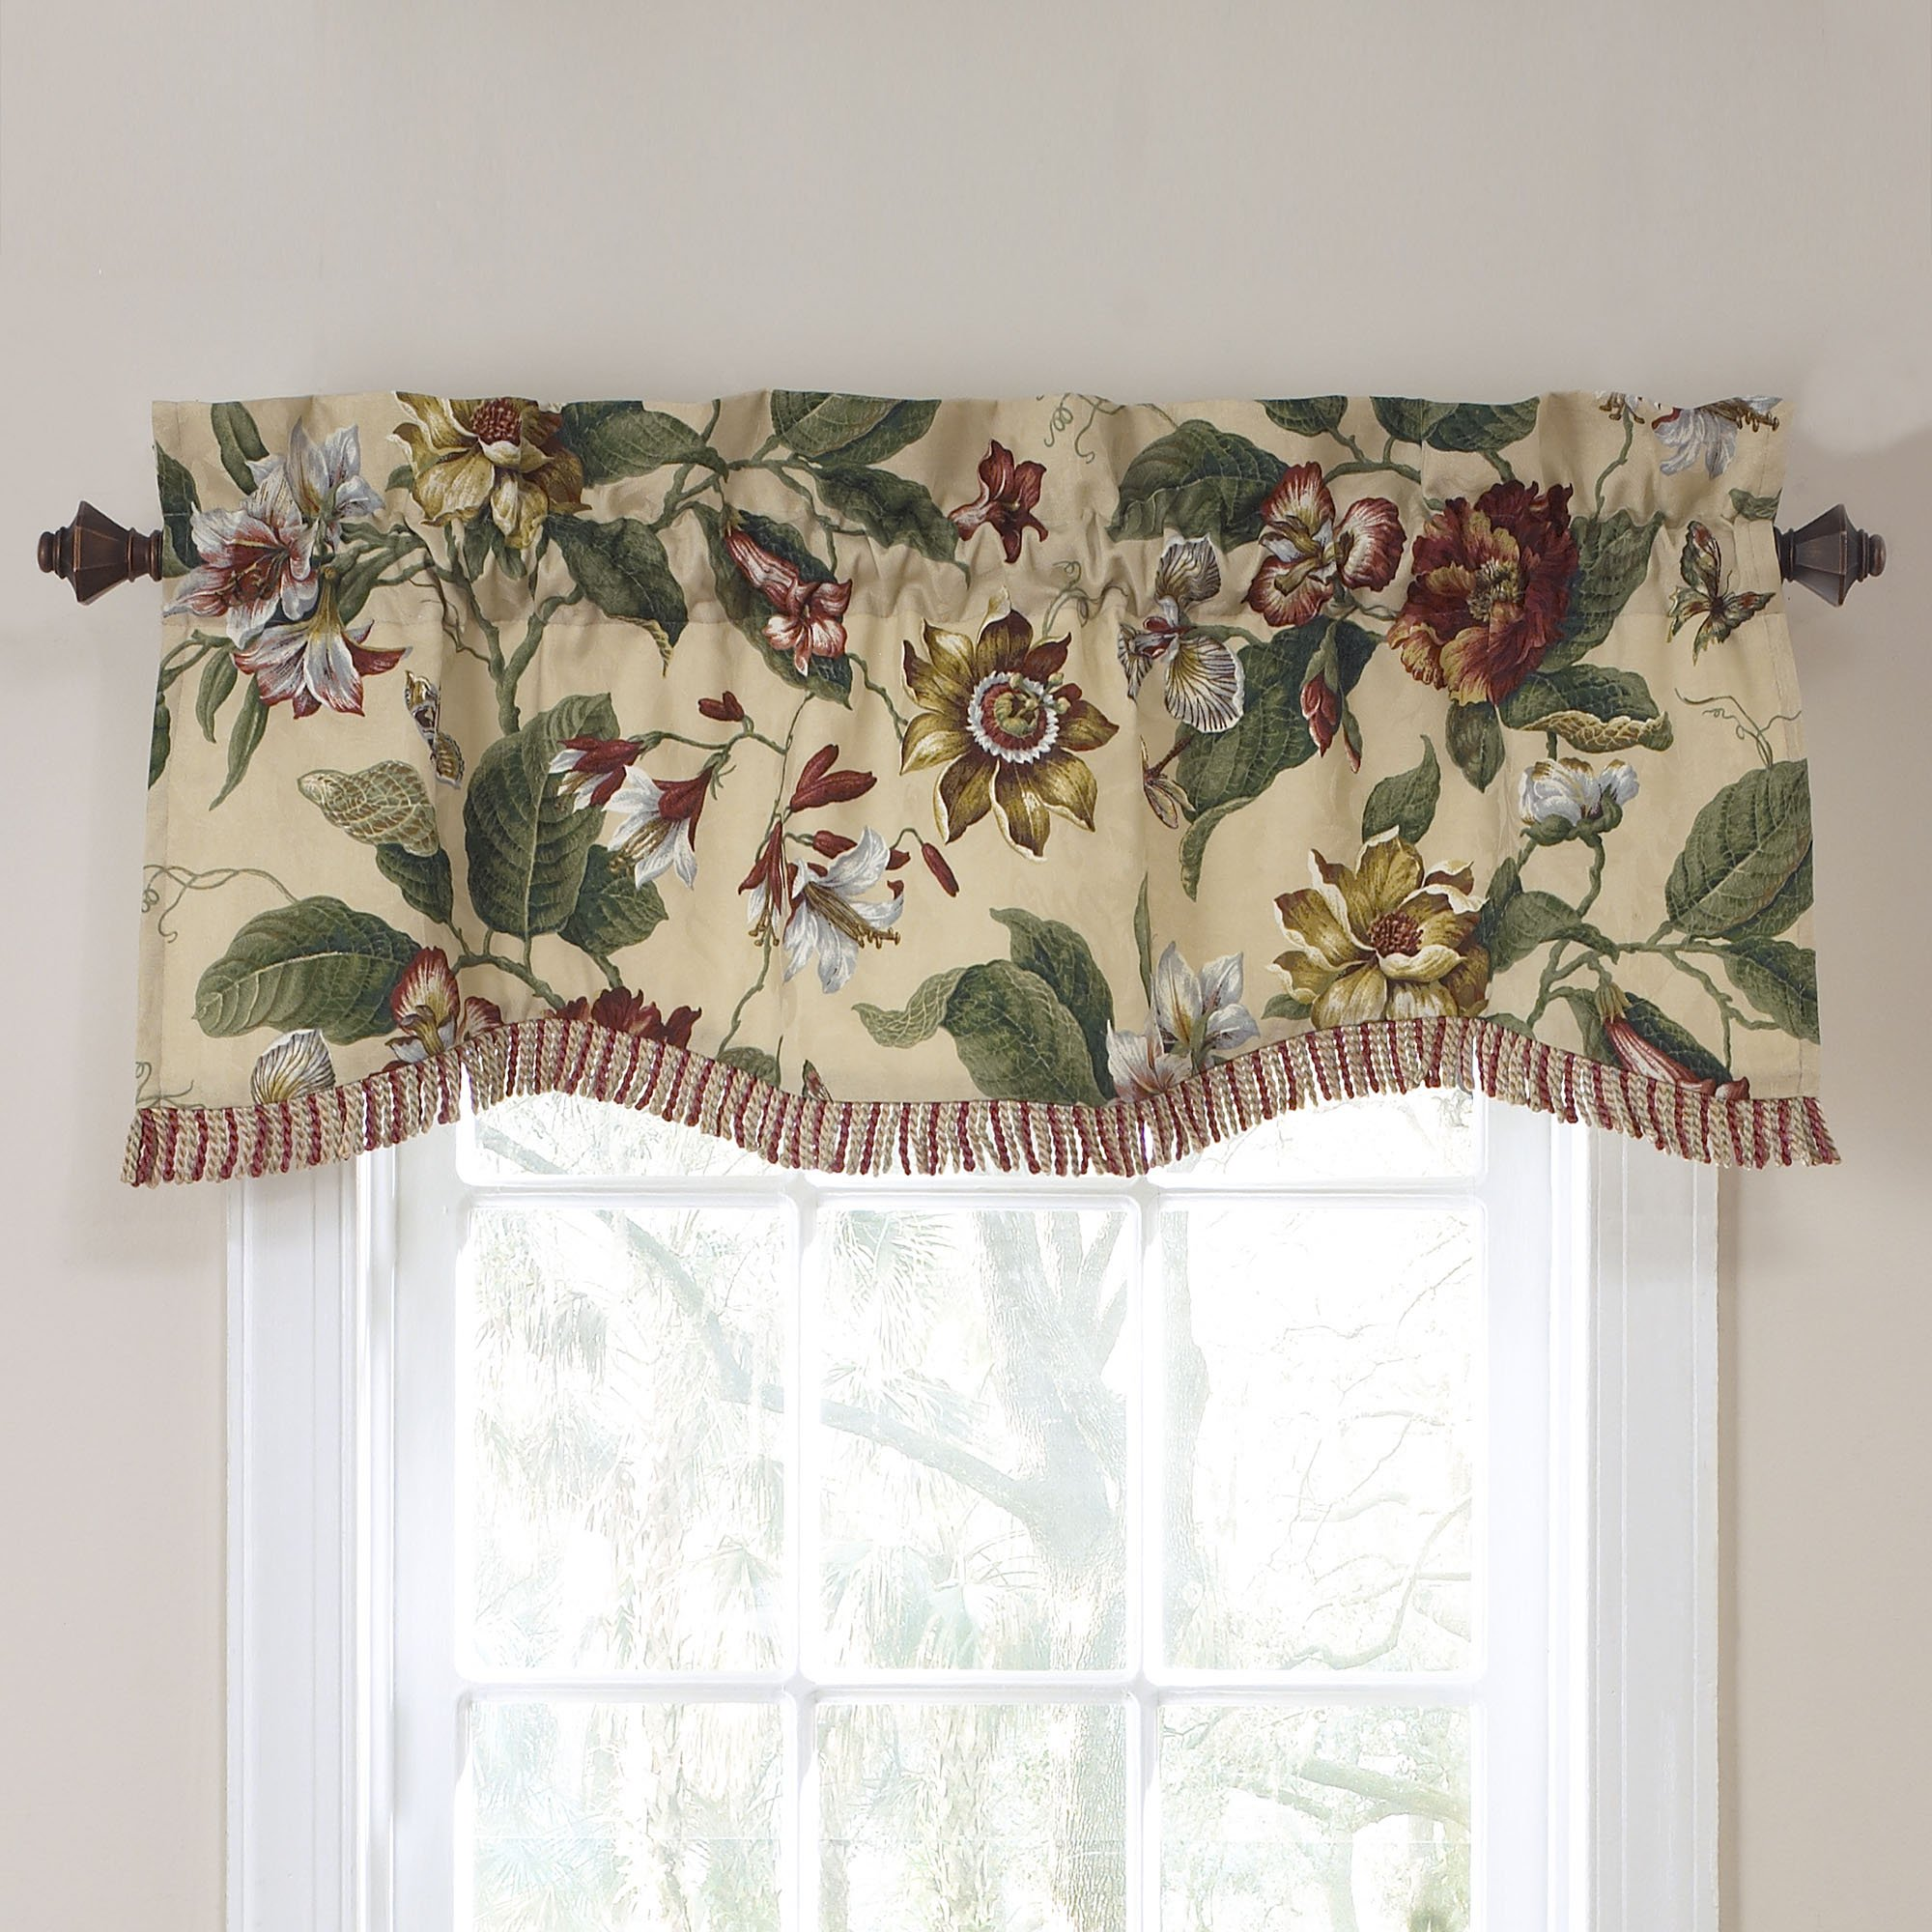 WAVERLY Valances for Windows - Laurel Springs 50'' x 15'' Short Curtain Valance Small Window Curtains Bathroom, Living Room and Kitchens, Parchment by WAVERLY